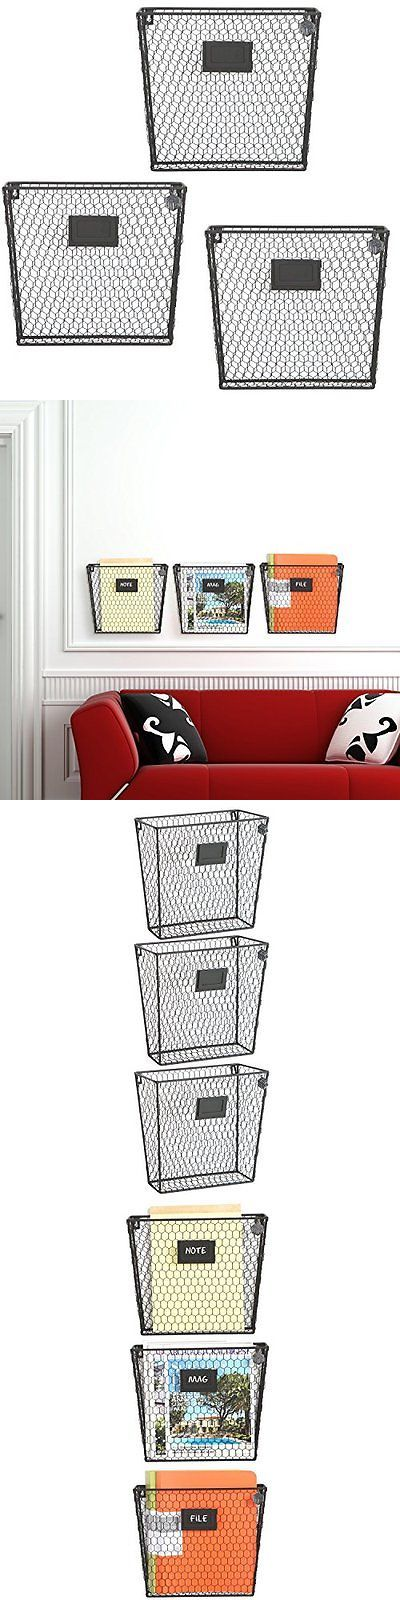 key and letter holders rustic metal wire basket wall mounted magazine rack mail sorter